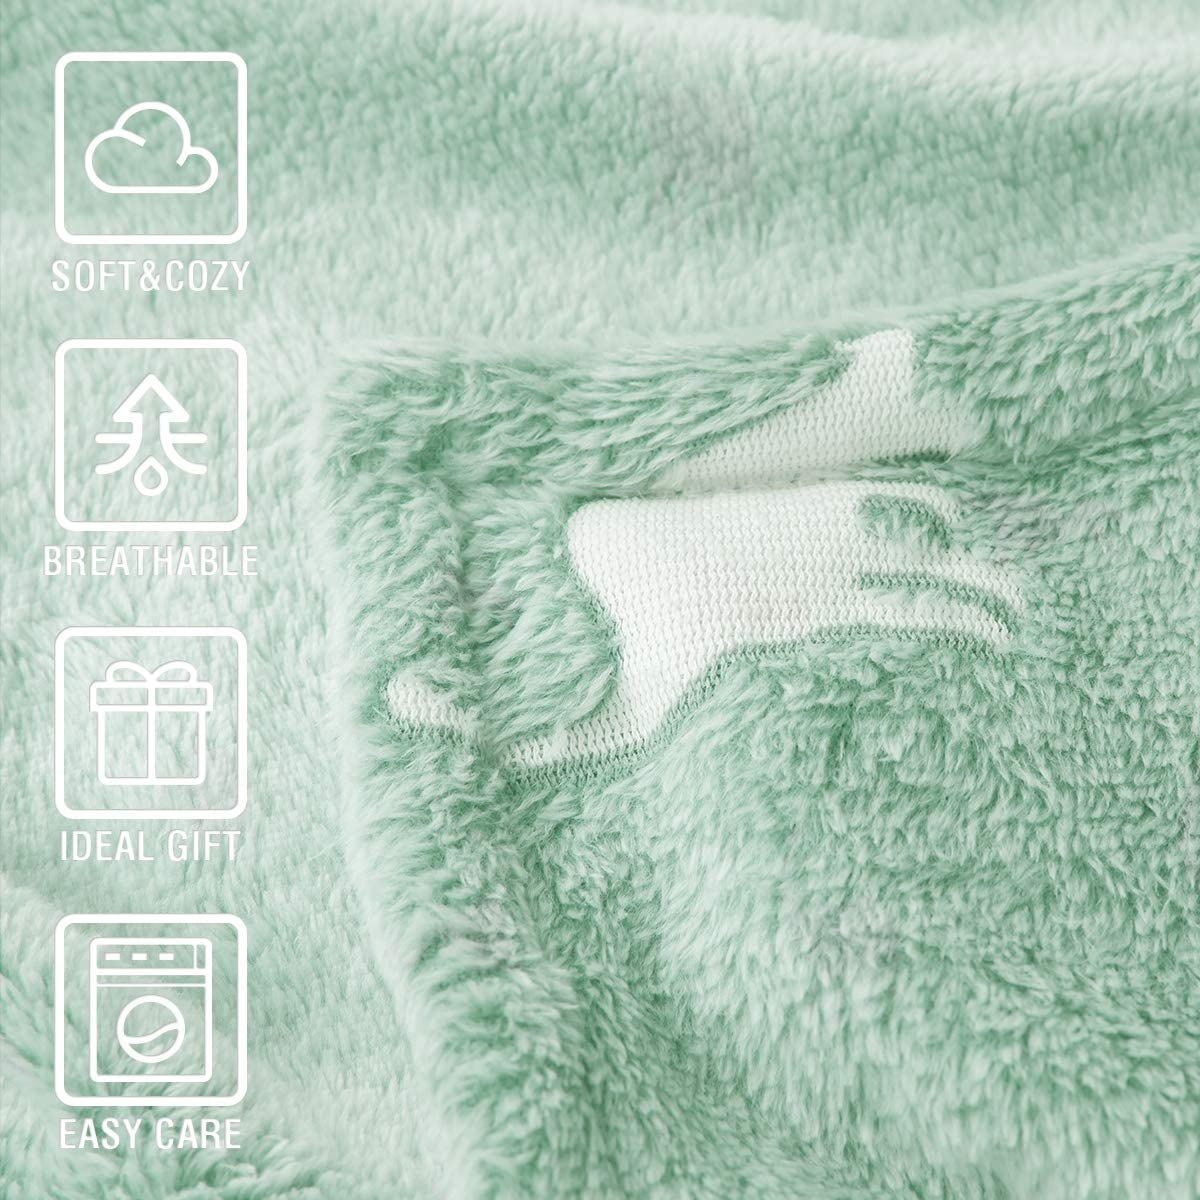 jinchan Dinosaur Throw Blanket Glow in The Dark Green Lightweight Flannel Fleece Throw Blankets for Nursery Couch Bed Magical Blankets All Seasons Gift for Girls Boys Baby Kids 50x60 Inch